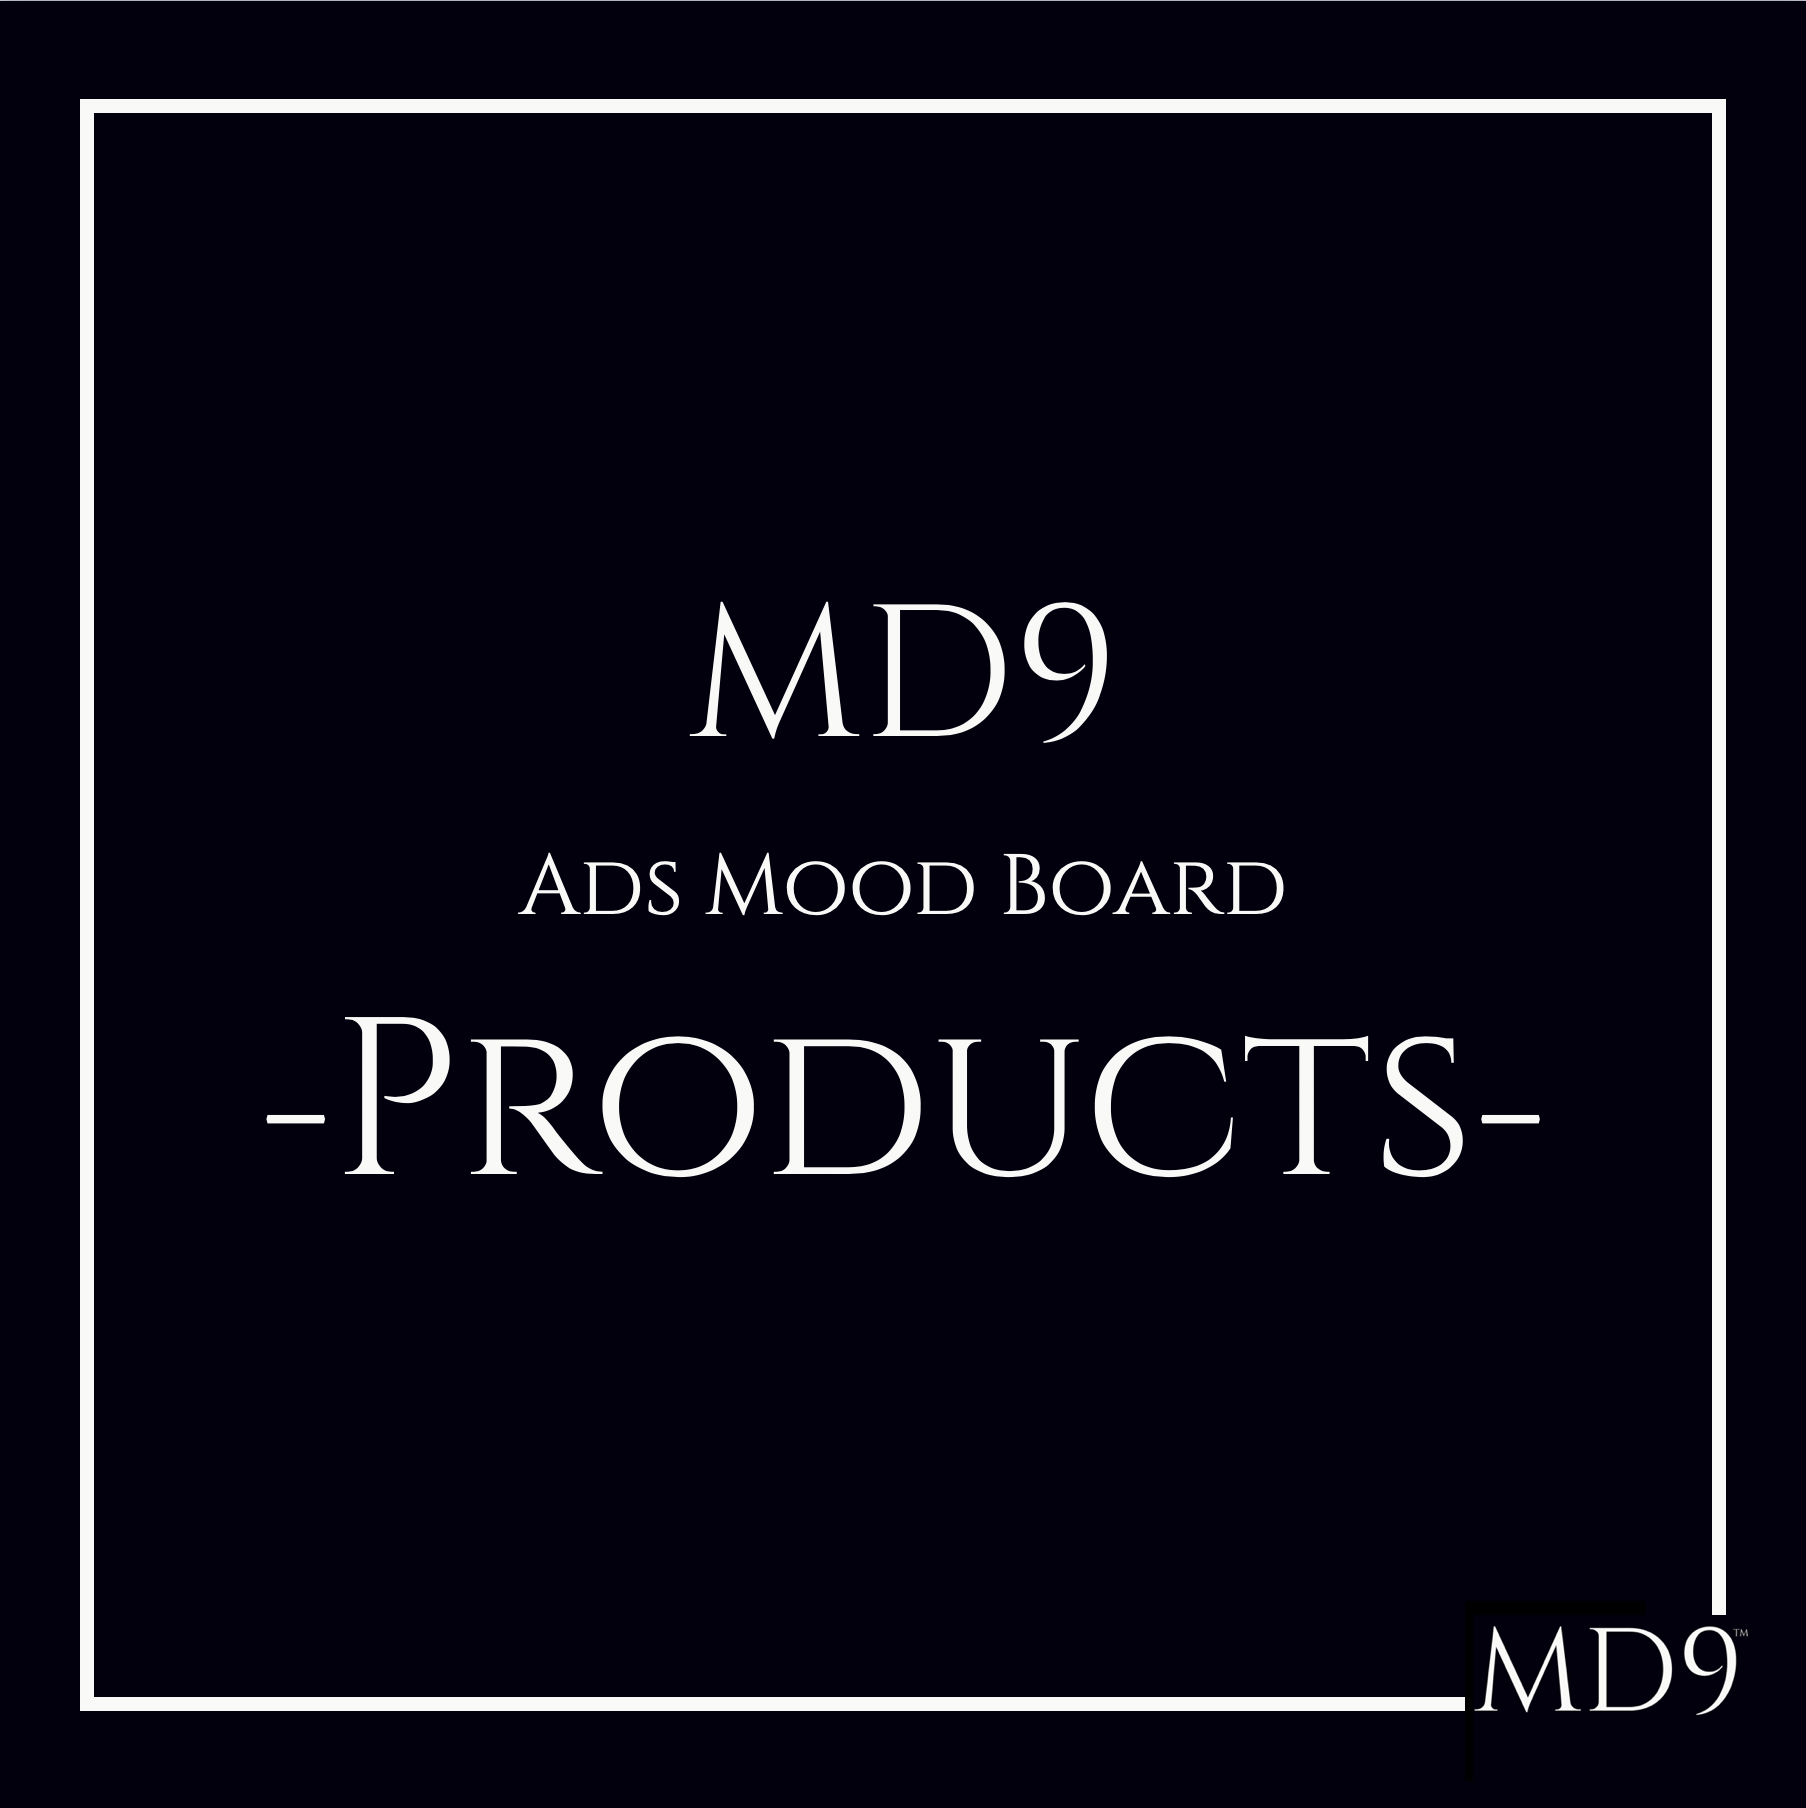 MD9's Ads Mood Board – Products